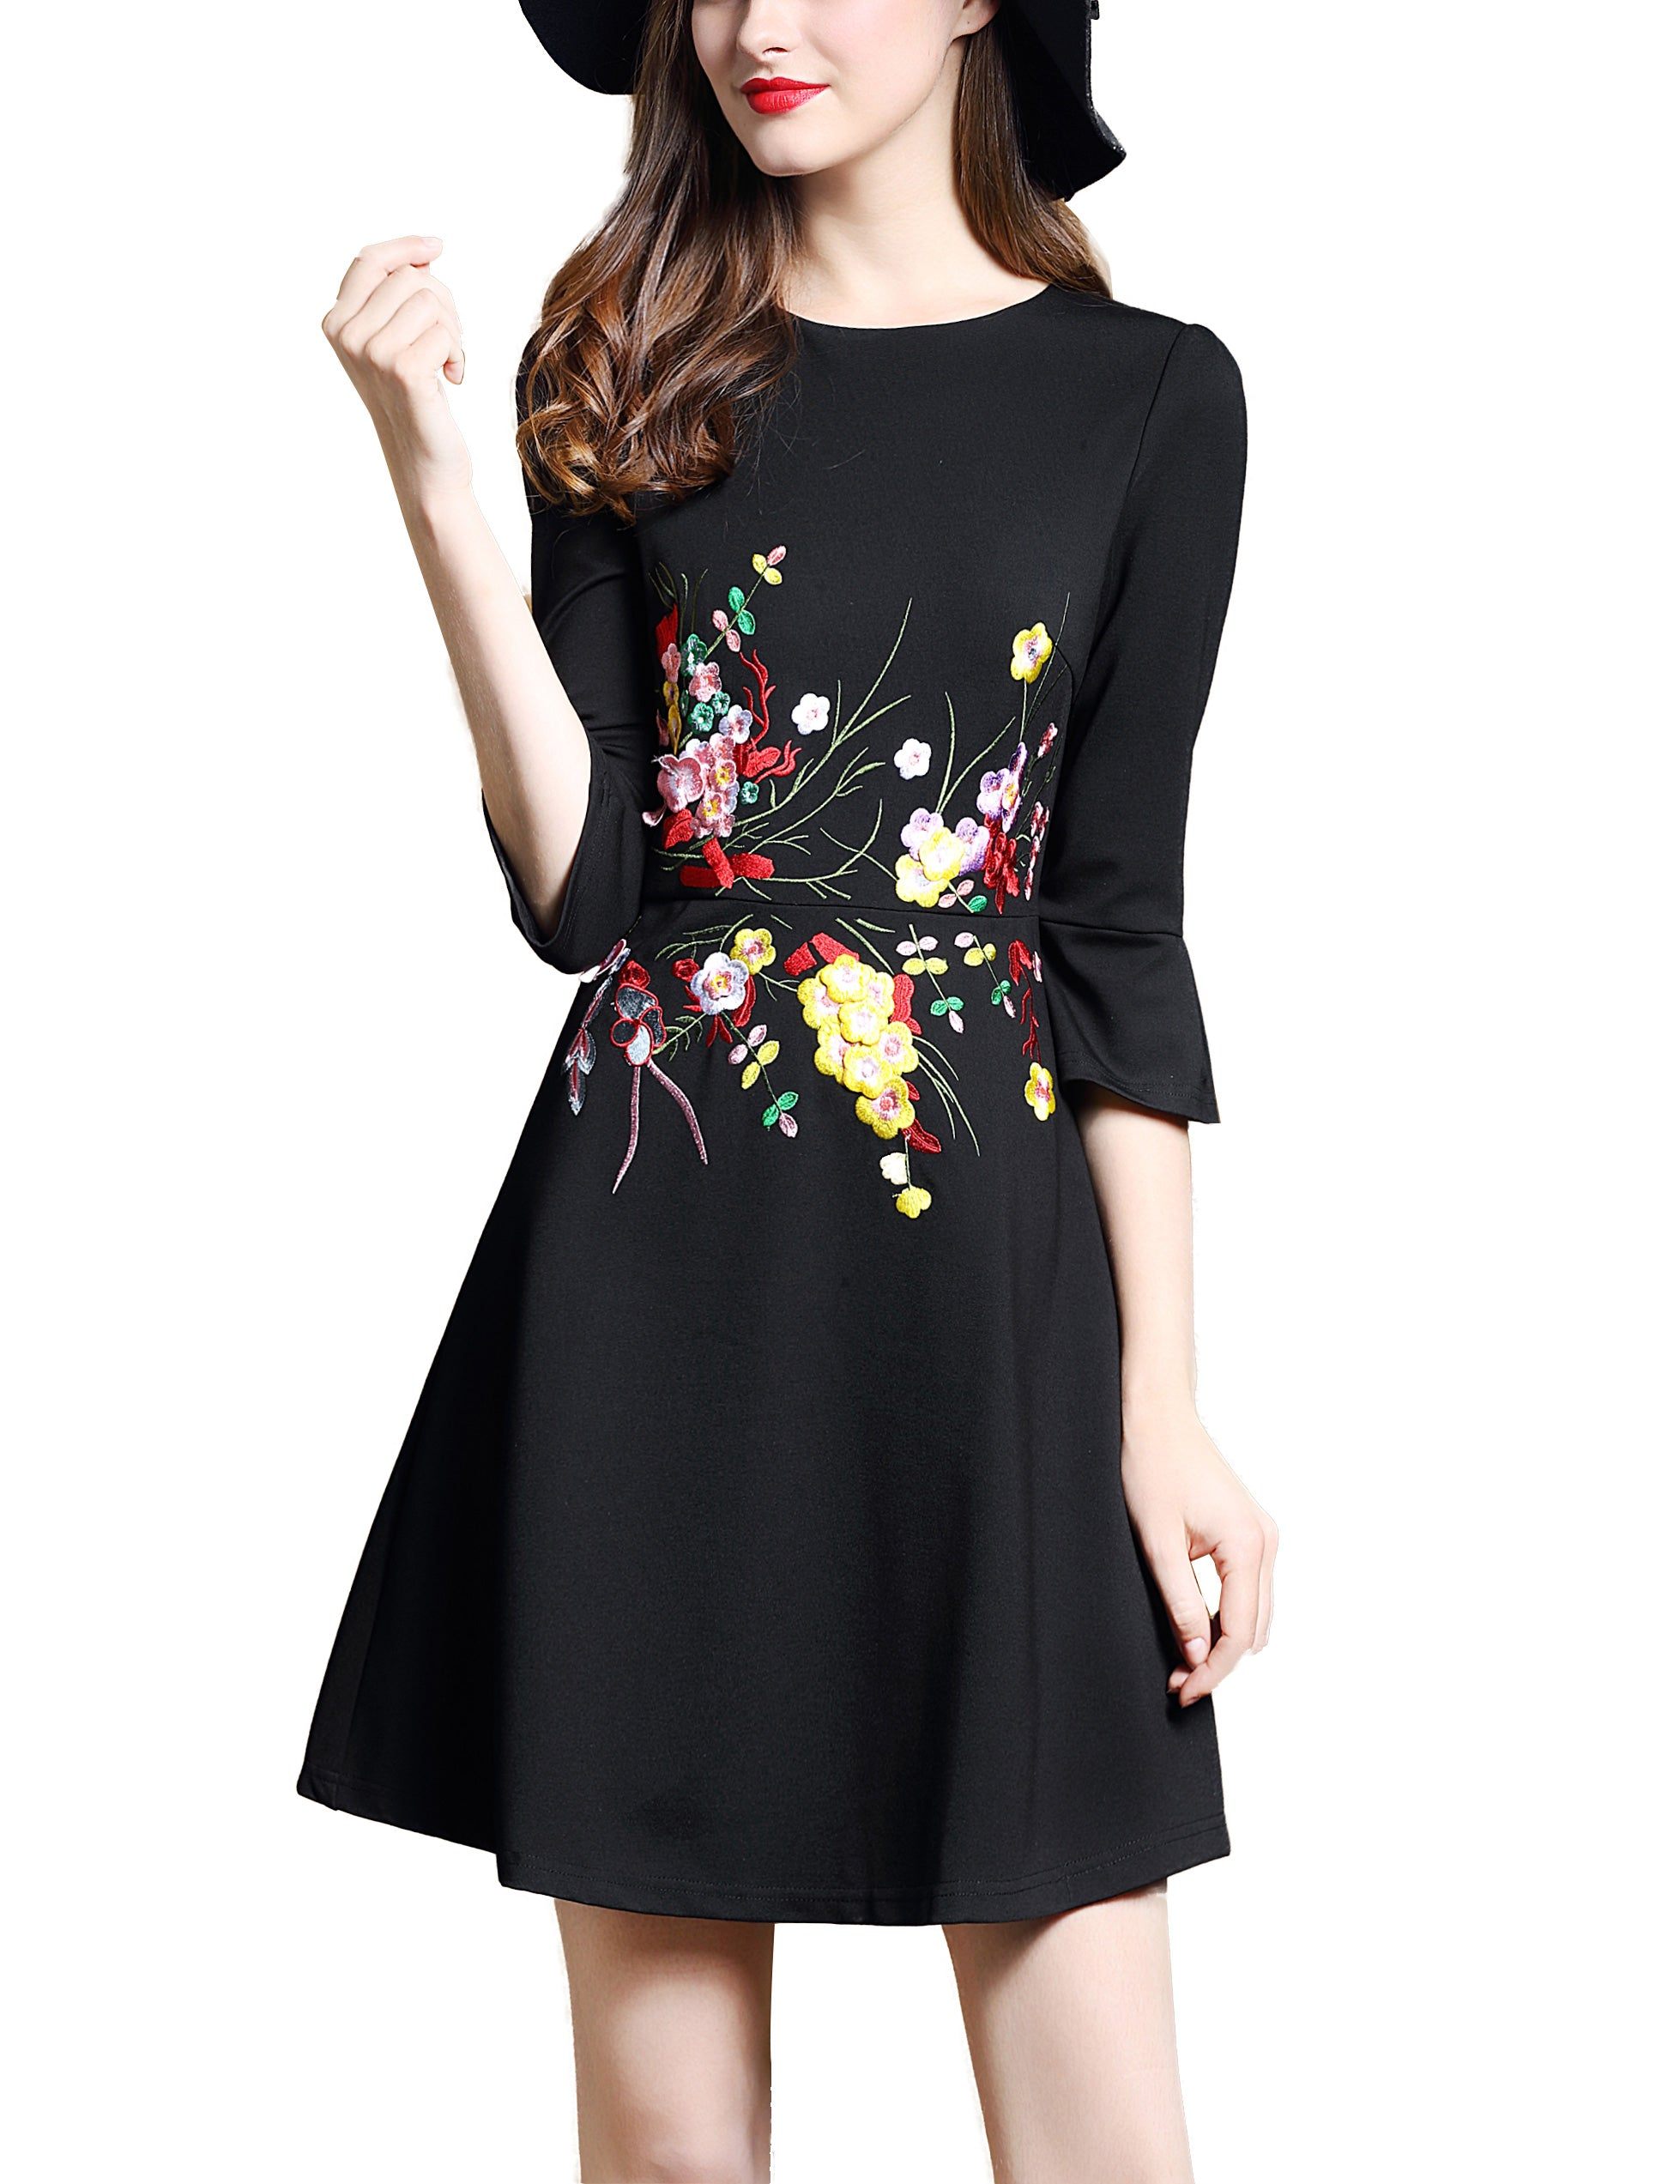 Lace embroidered tassel dress 40